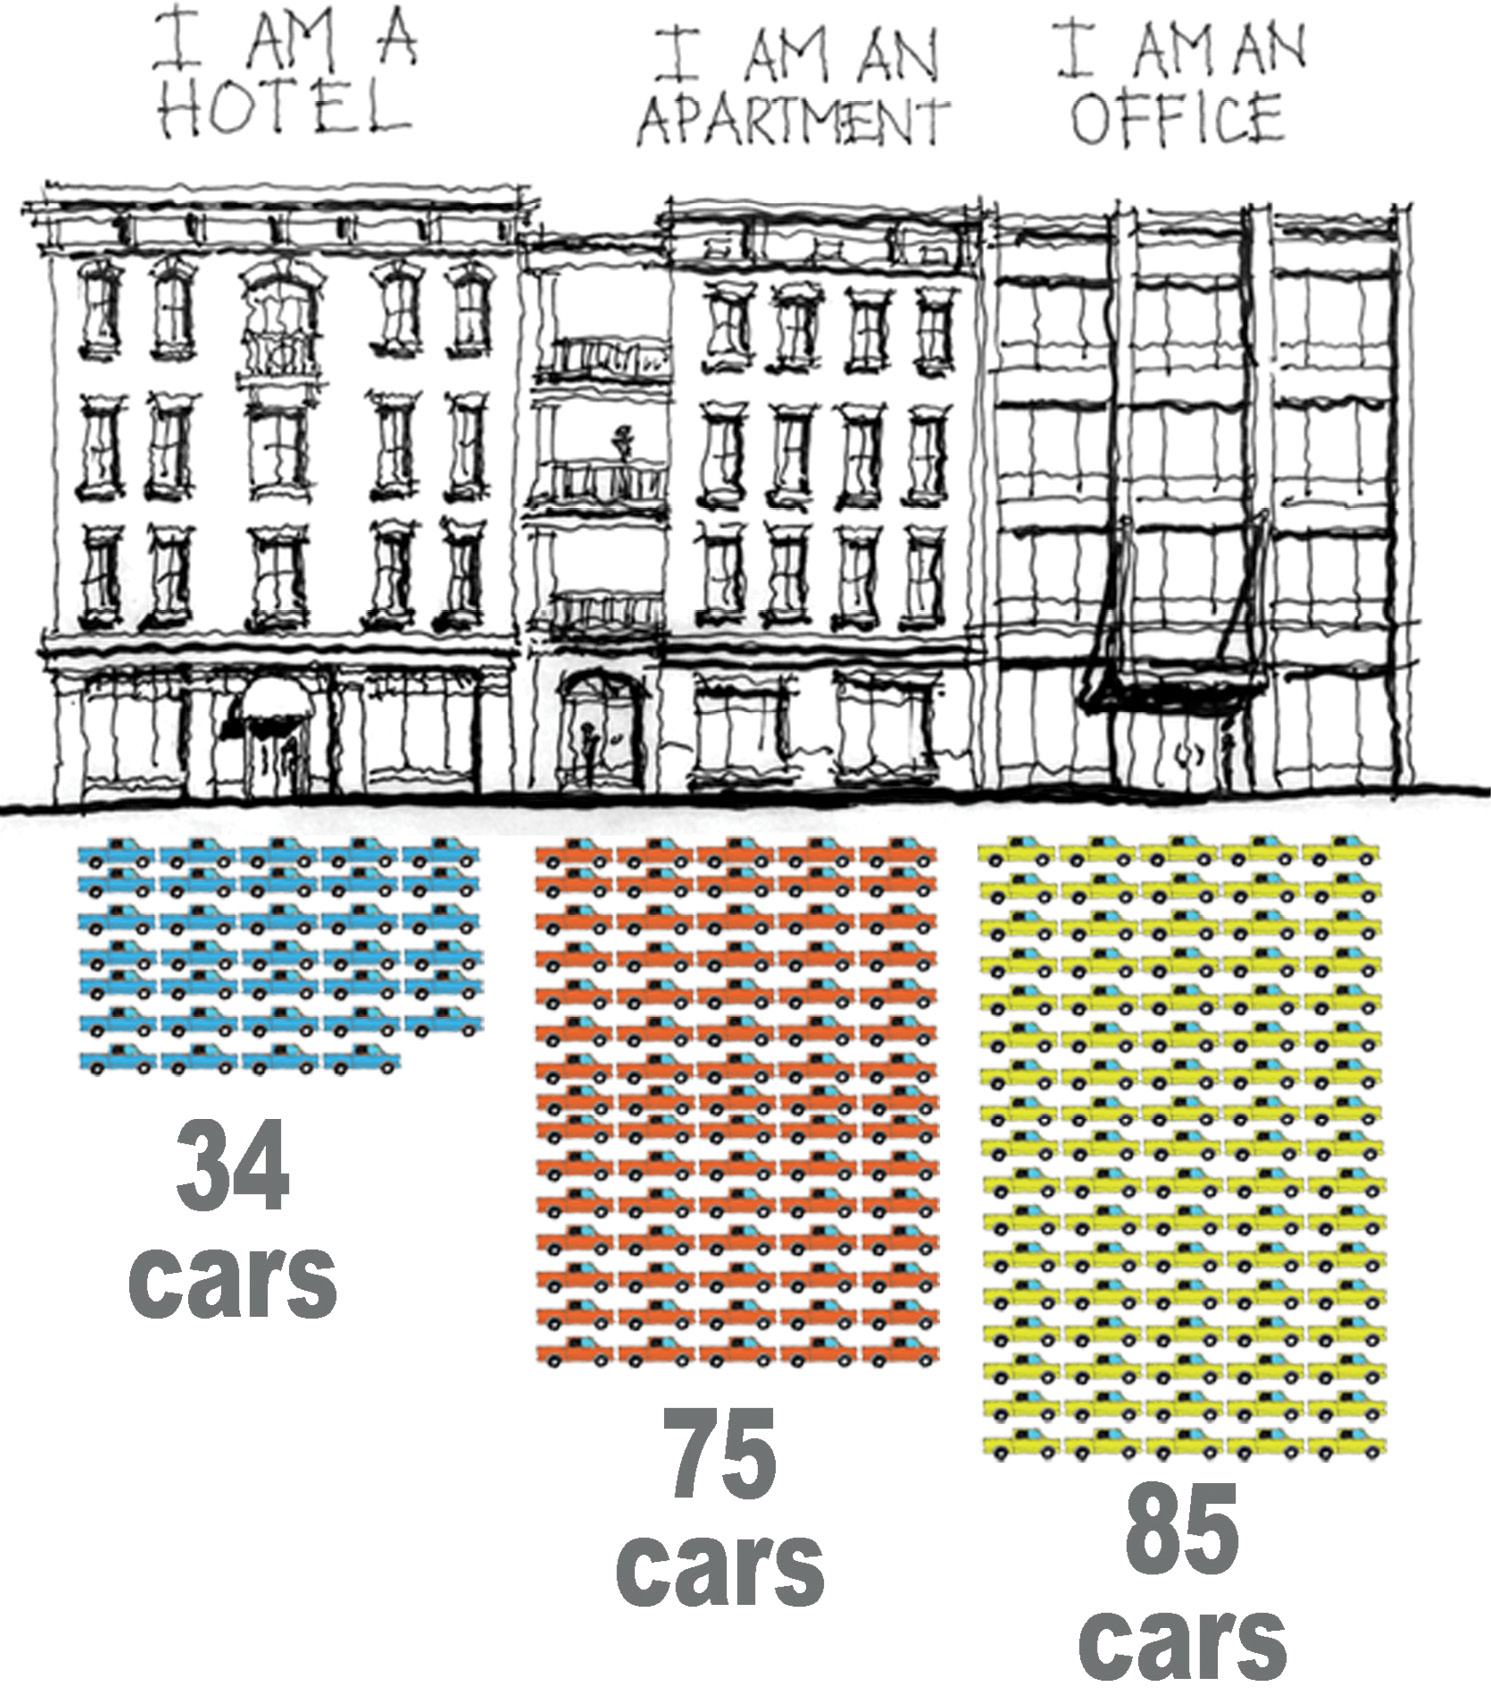 In a post for buildingsarecool.com, local architect Stephen Ramos calculated required parking for buildings of the same size but different uses, based on City of Charleston ratios, and determined that hotels contribute the least to traffic congestion.